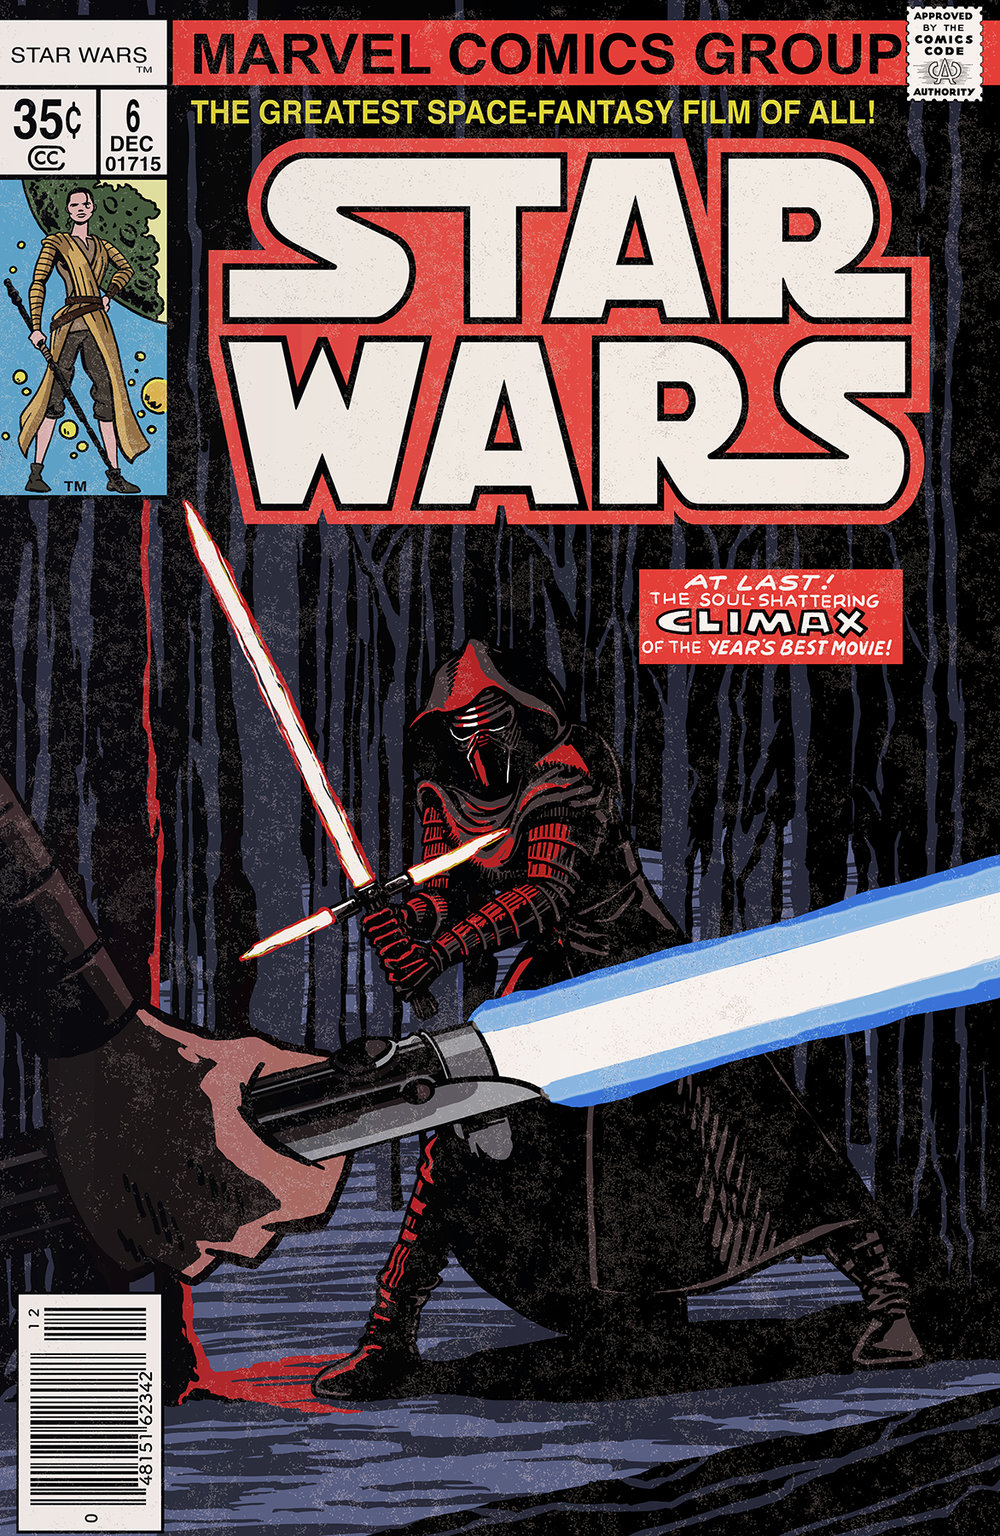 Star Wars Cover.jpg